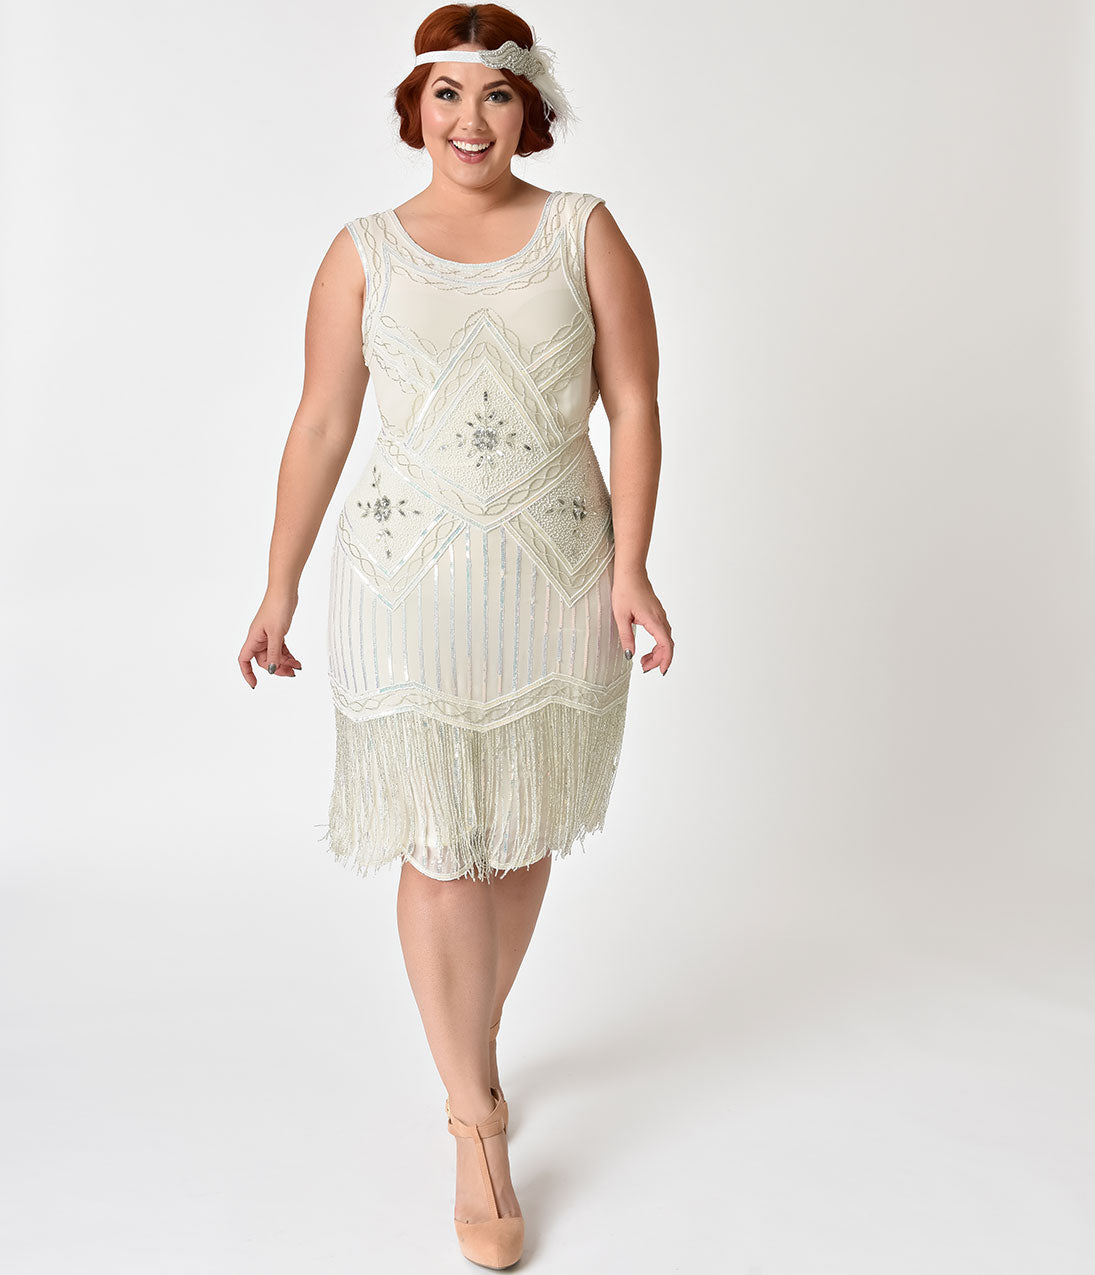 1920s Style Dresses, Flapper Dresses Plus Size 1920s Style White  Silver Beaded Ines Cocktail Dress $96.00 AT vintagedancer.com